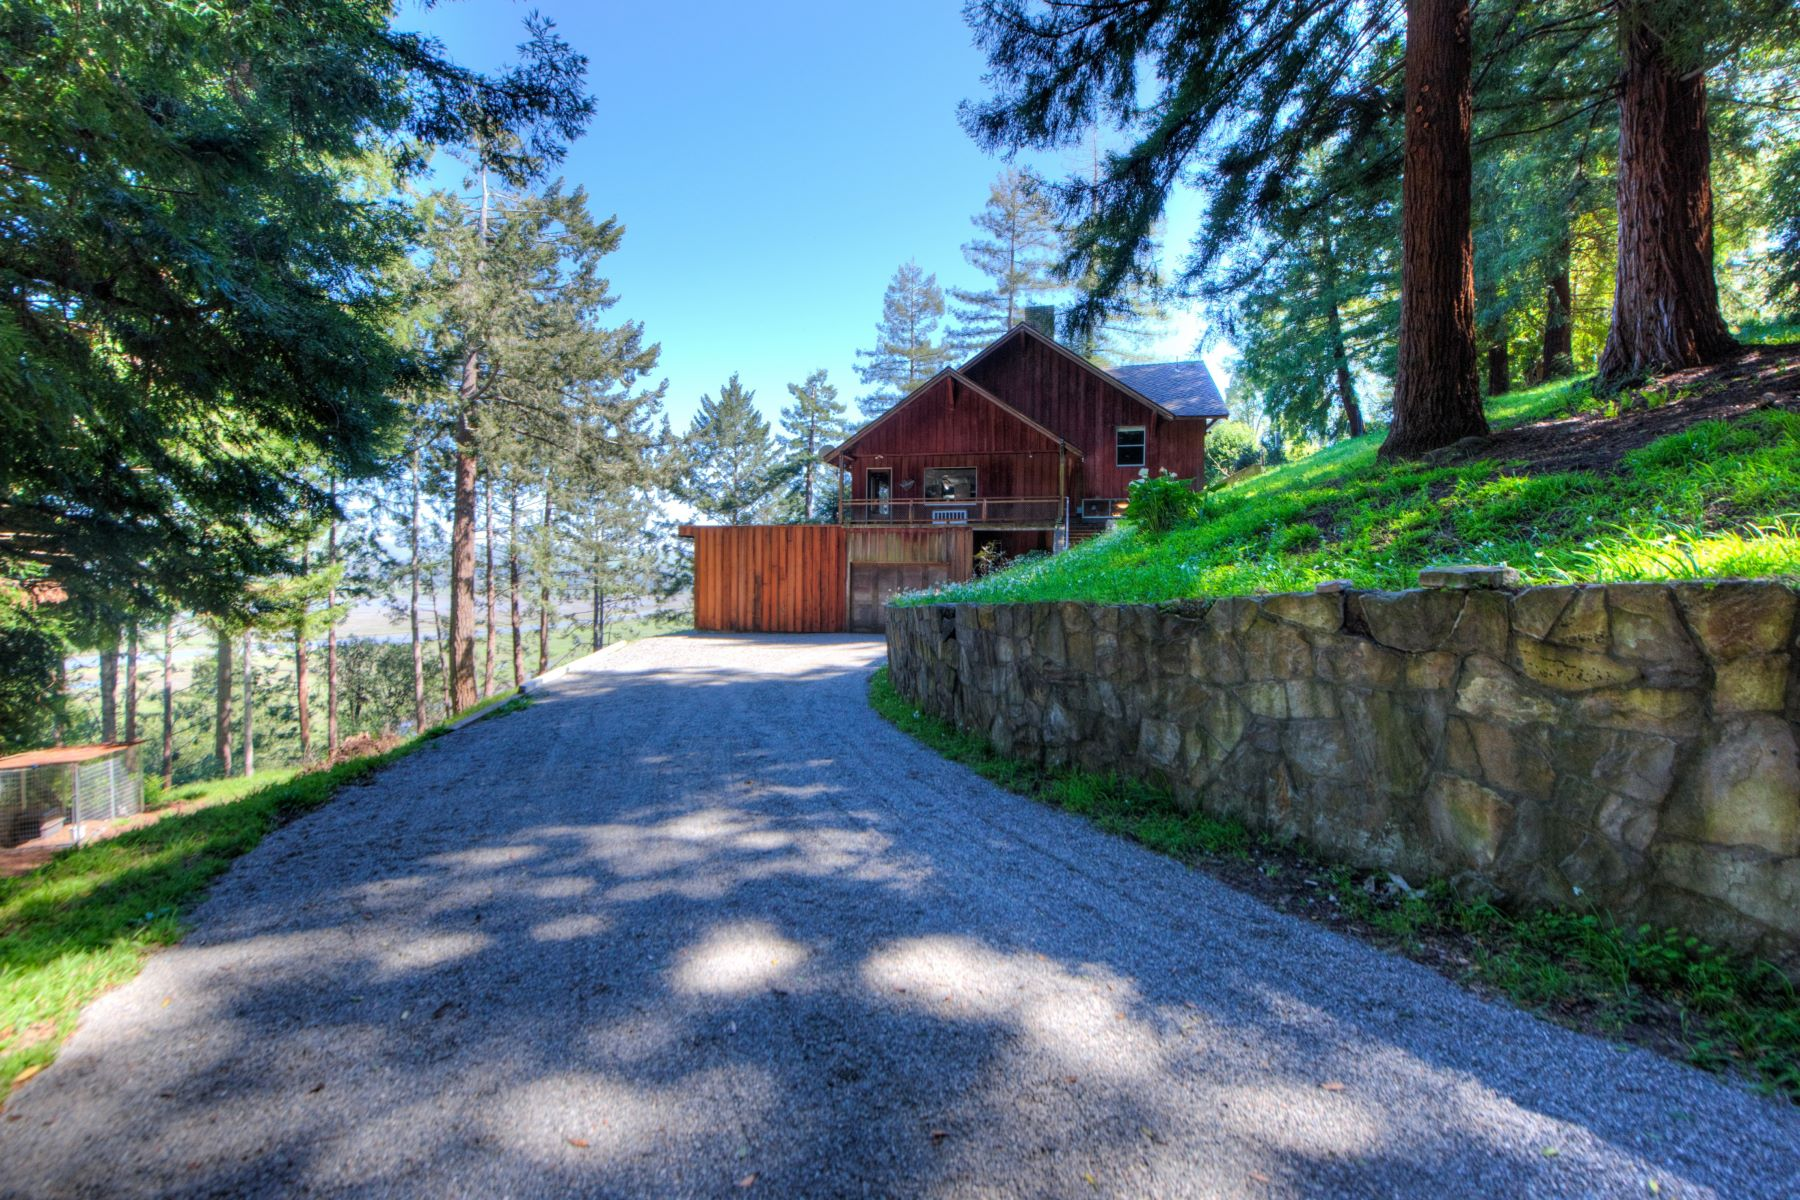 Maison unifamiliale pour l Vente à Vintage Inverness Home on 1.49 Acres, Stunning Water Views 15 Drakes View Drive Inverness, Californie 94937 États-Unis